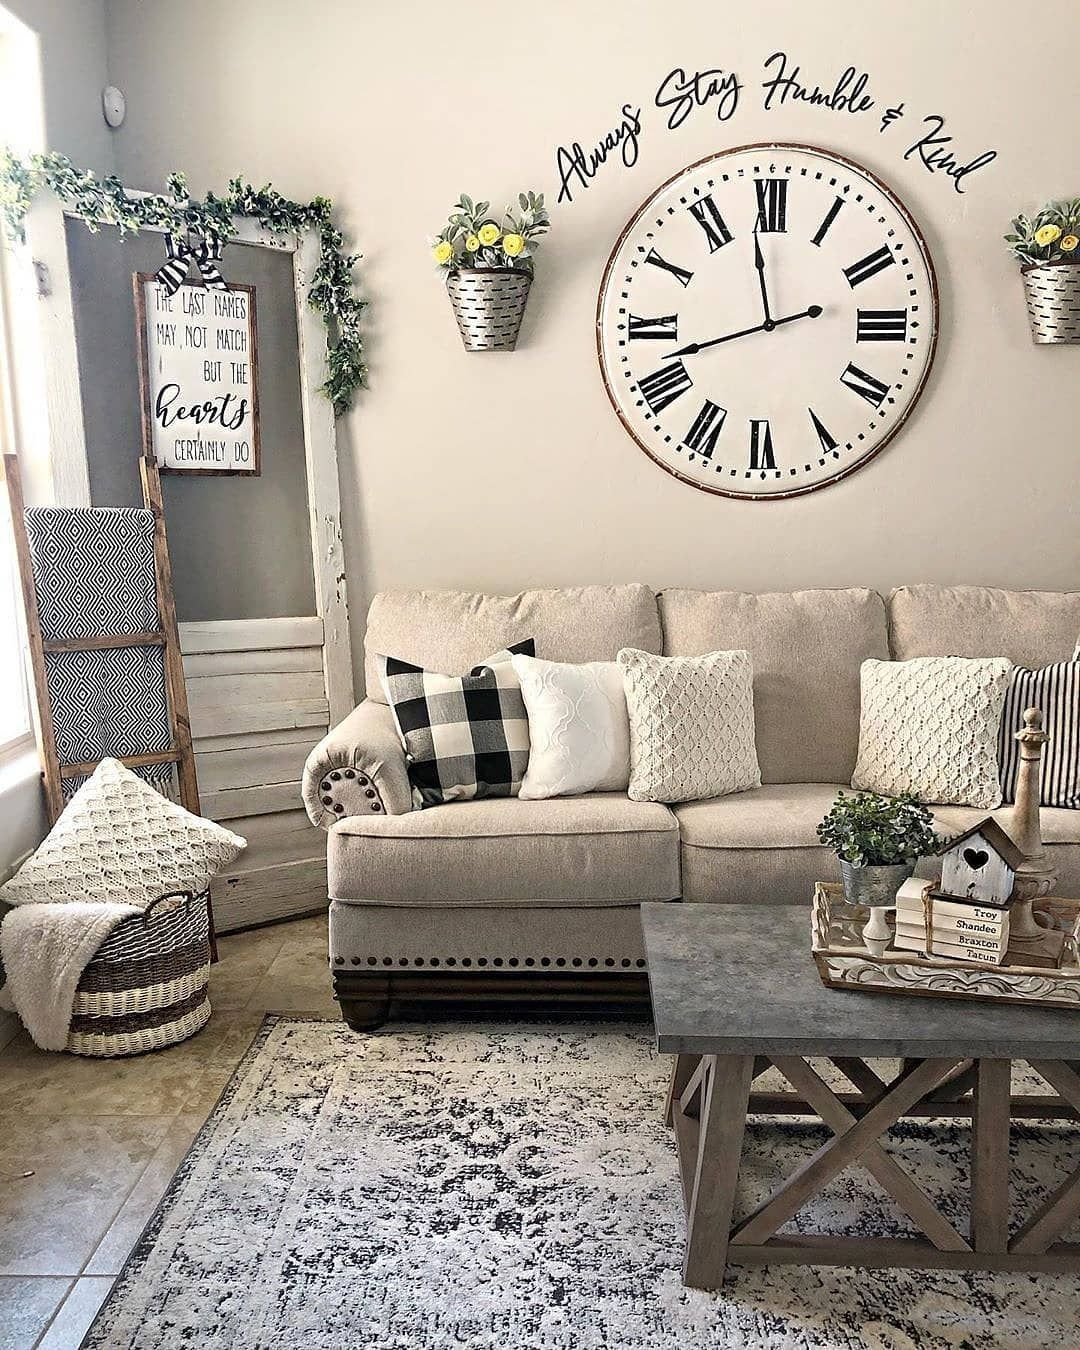 49 Charming Modern Farmhouse Style Living Room Decor Ideas Farmhouse Decor Living Room Farmhouse Style Living Room Farmhouse Style Living Room Decor